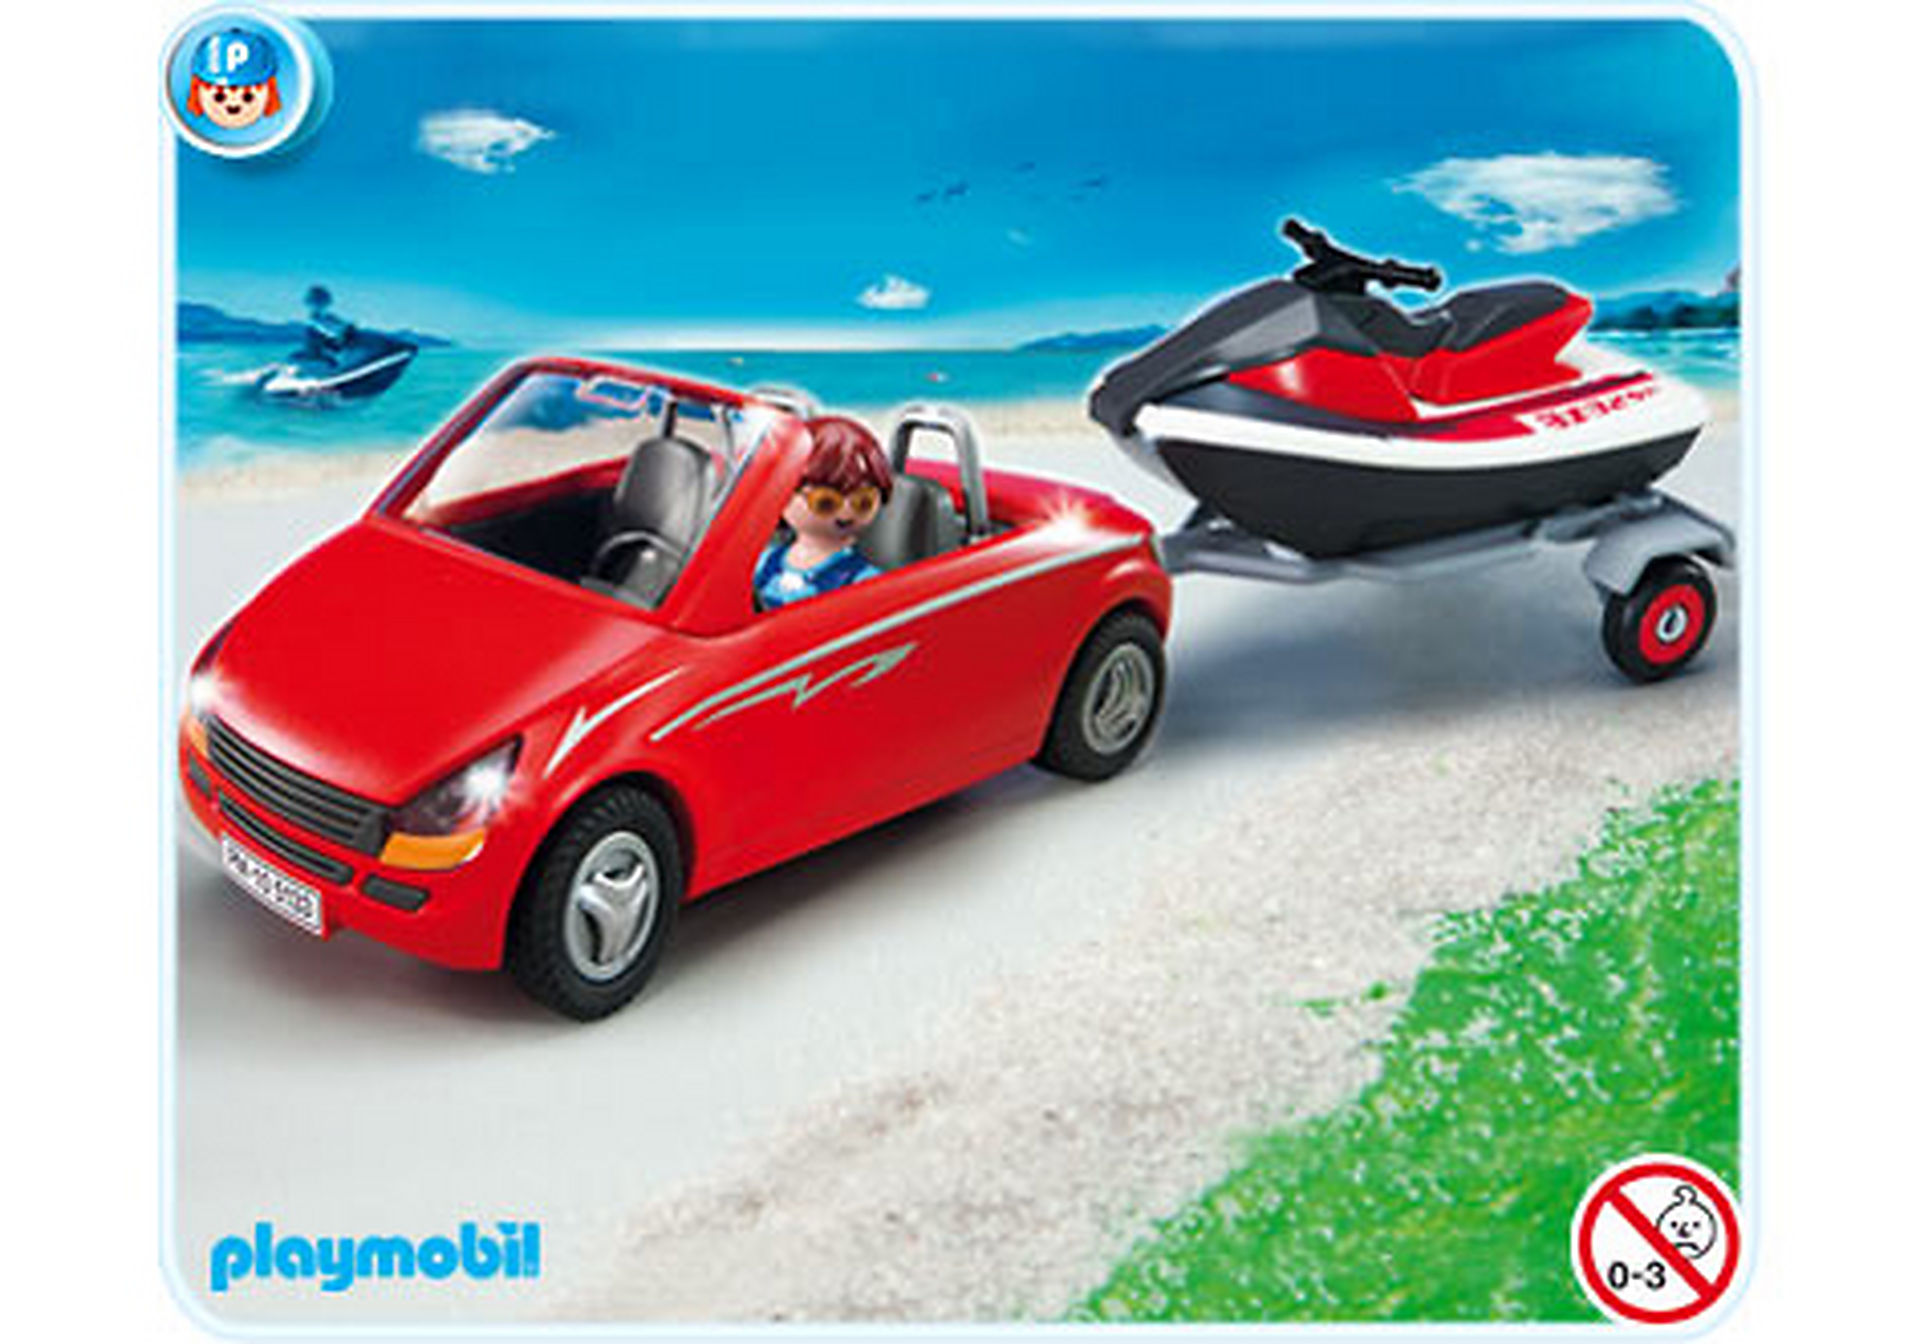 http://media.playmobil.com/i/playmobil/5133-A_product_detail/Roadster mit Jetski